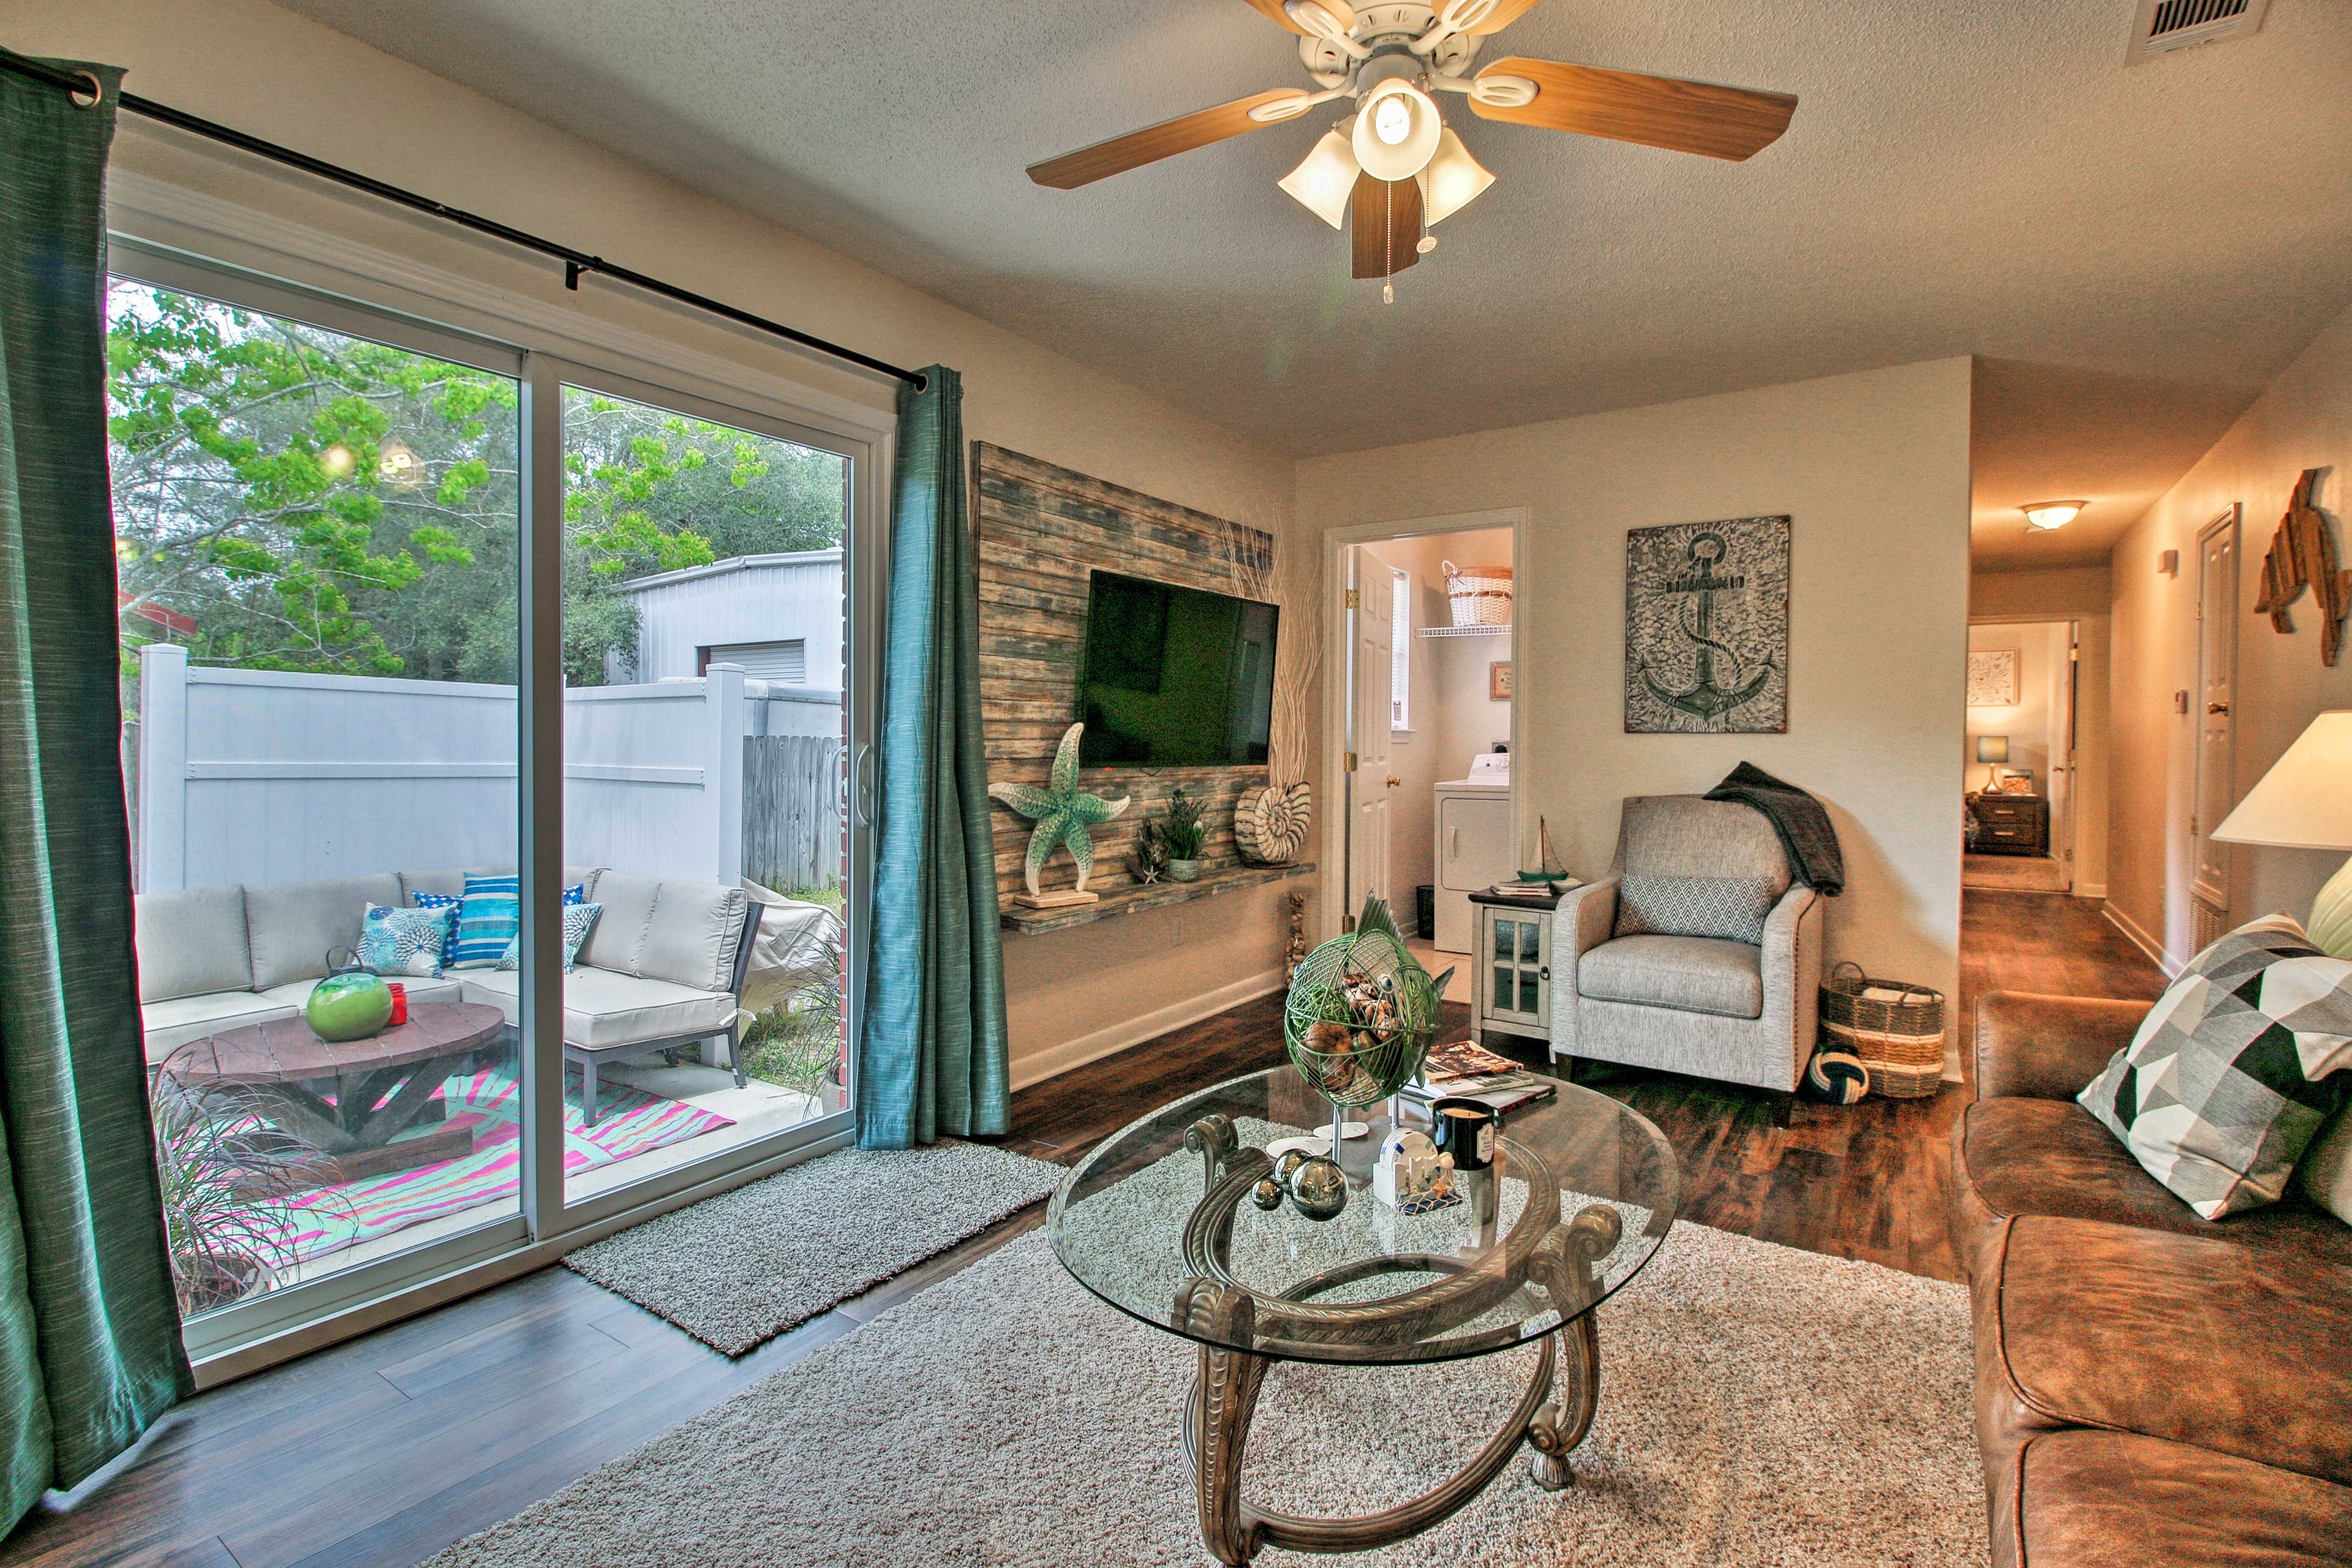 pensacola home w furnished patio 1 mi to bay houses for rent in pensacola florida united states